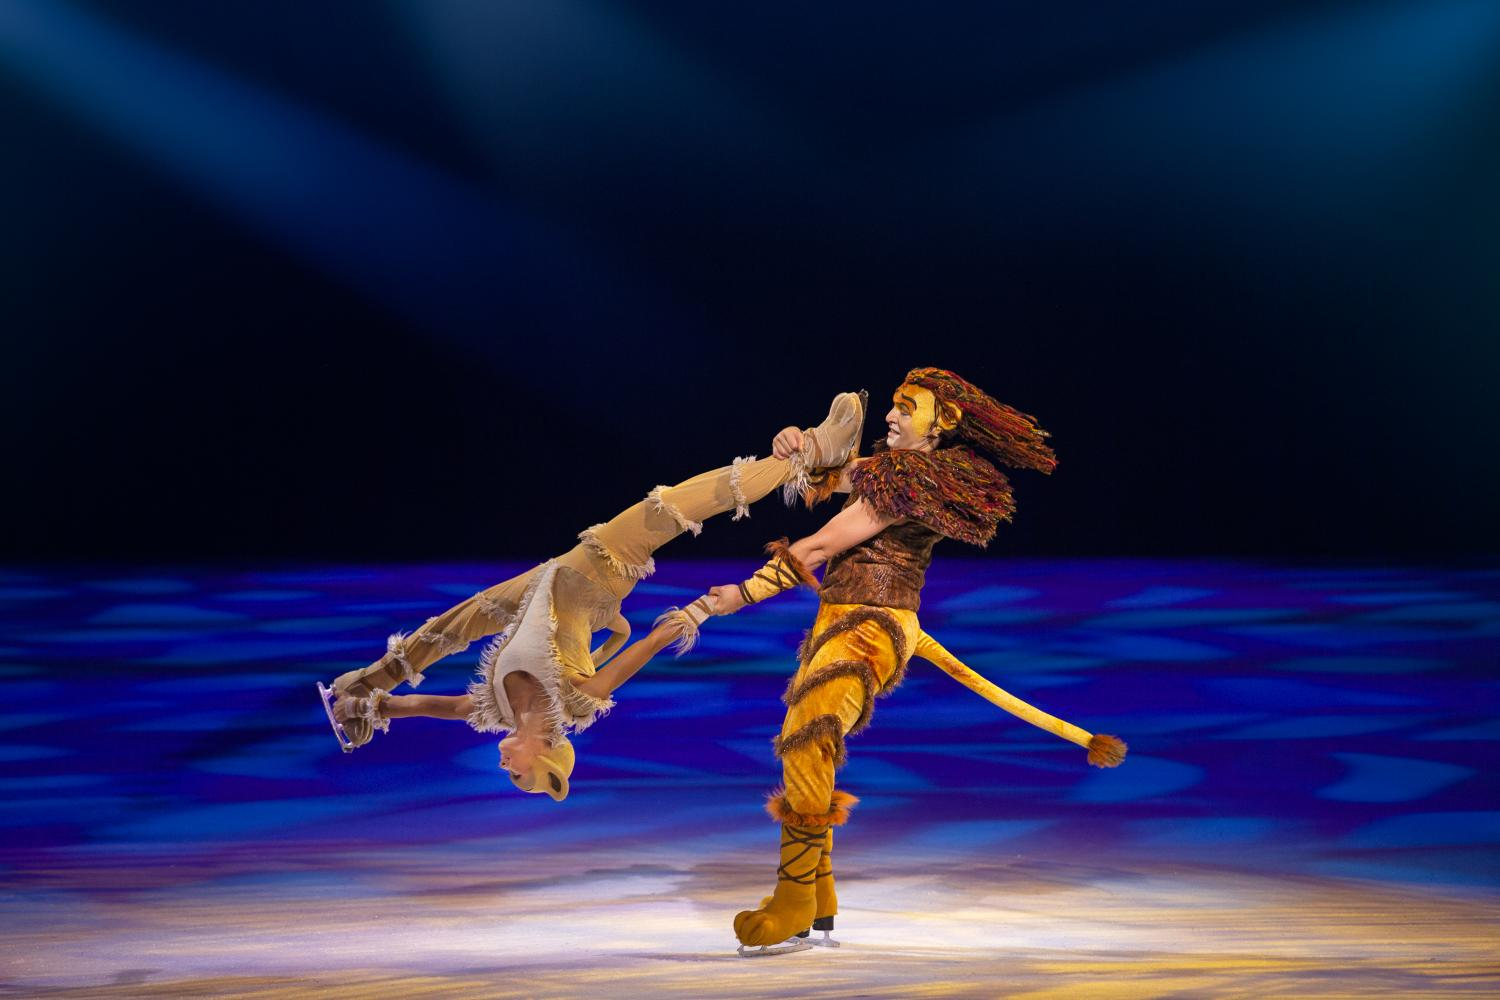 Simba and Nala dancing on ice